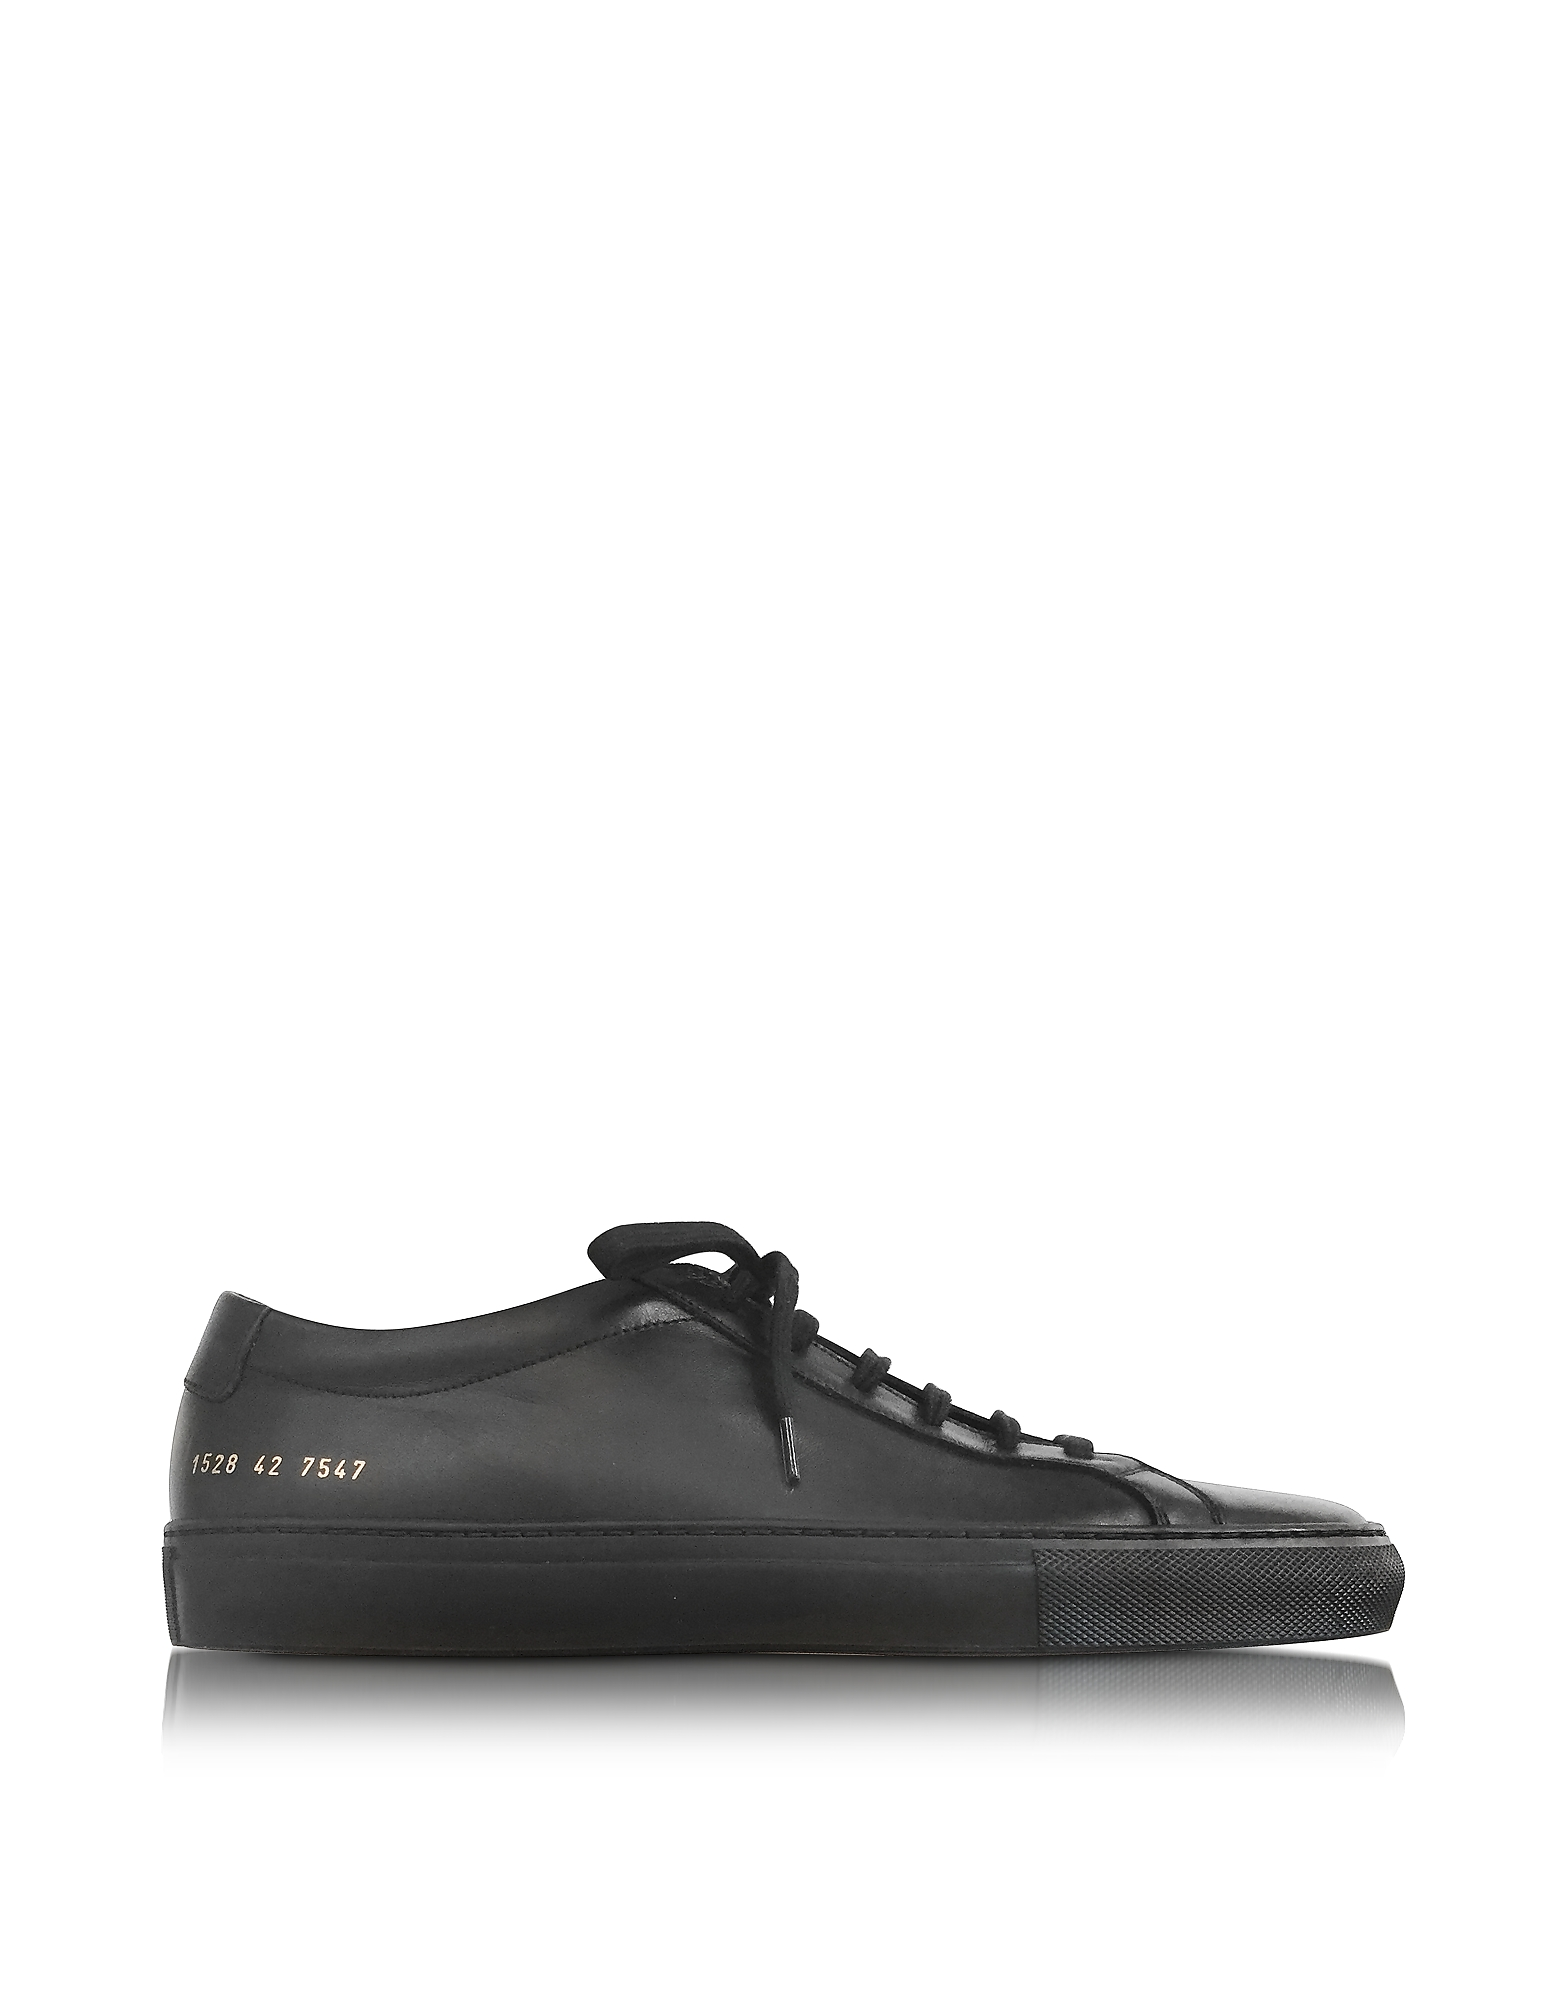 Common Projects Shoes, Original Achilles Low Black Leather Men's Sneaker